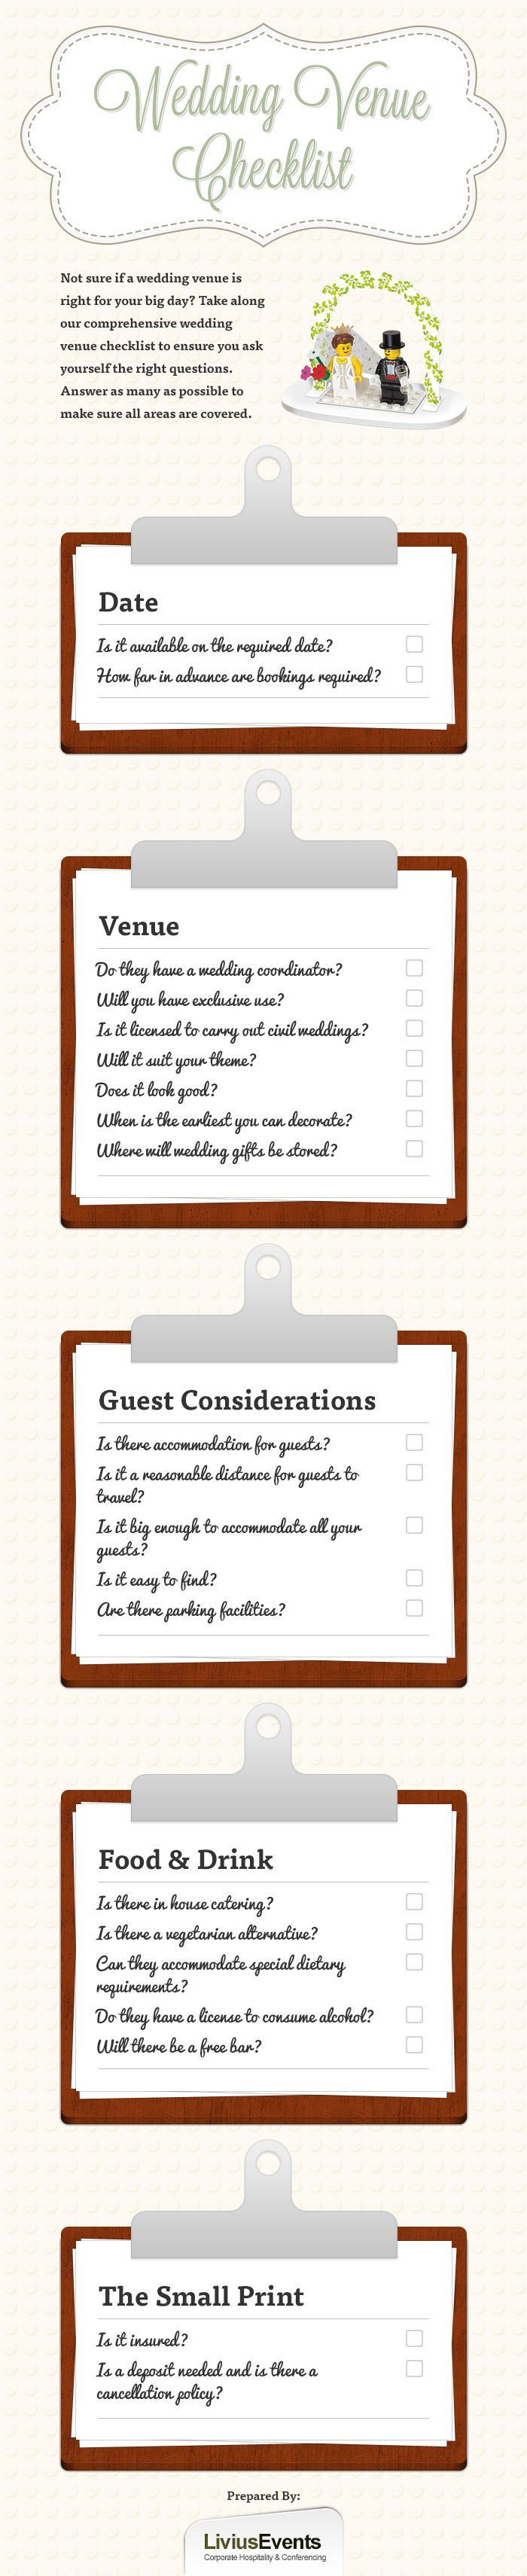 Finding the perfect wedding venue isn't always the easier task -- especially when you're planning your big day during the busy wedding season! . Print it out, and take it with you during your venue hunt to ensure you're asking the right questions and securing the right venue...